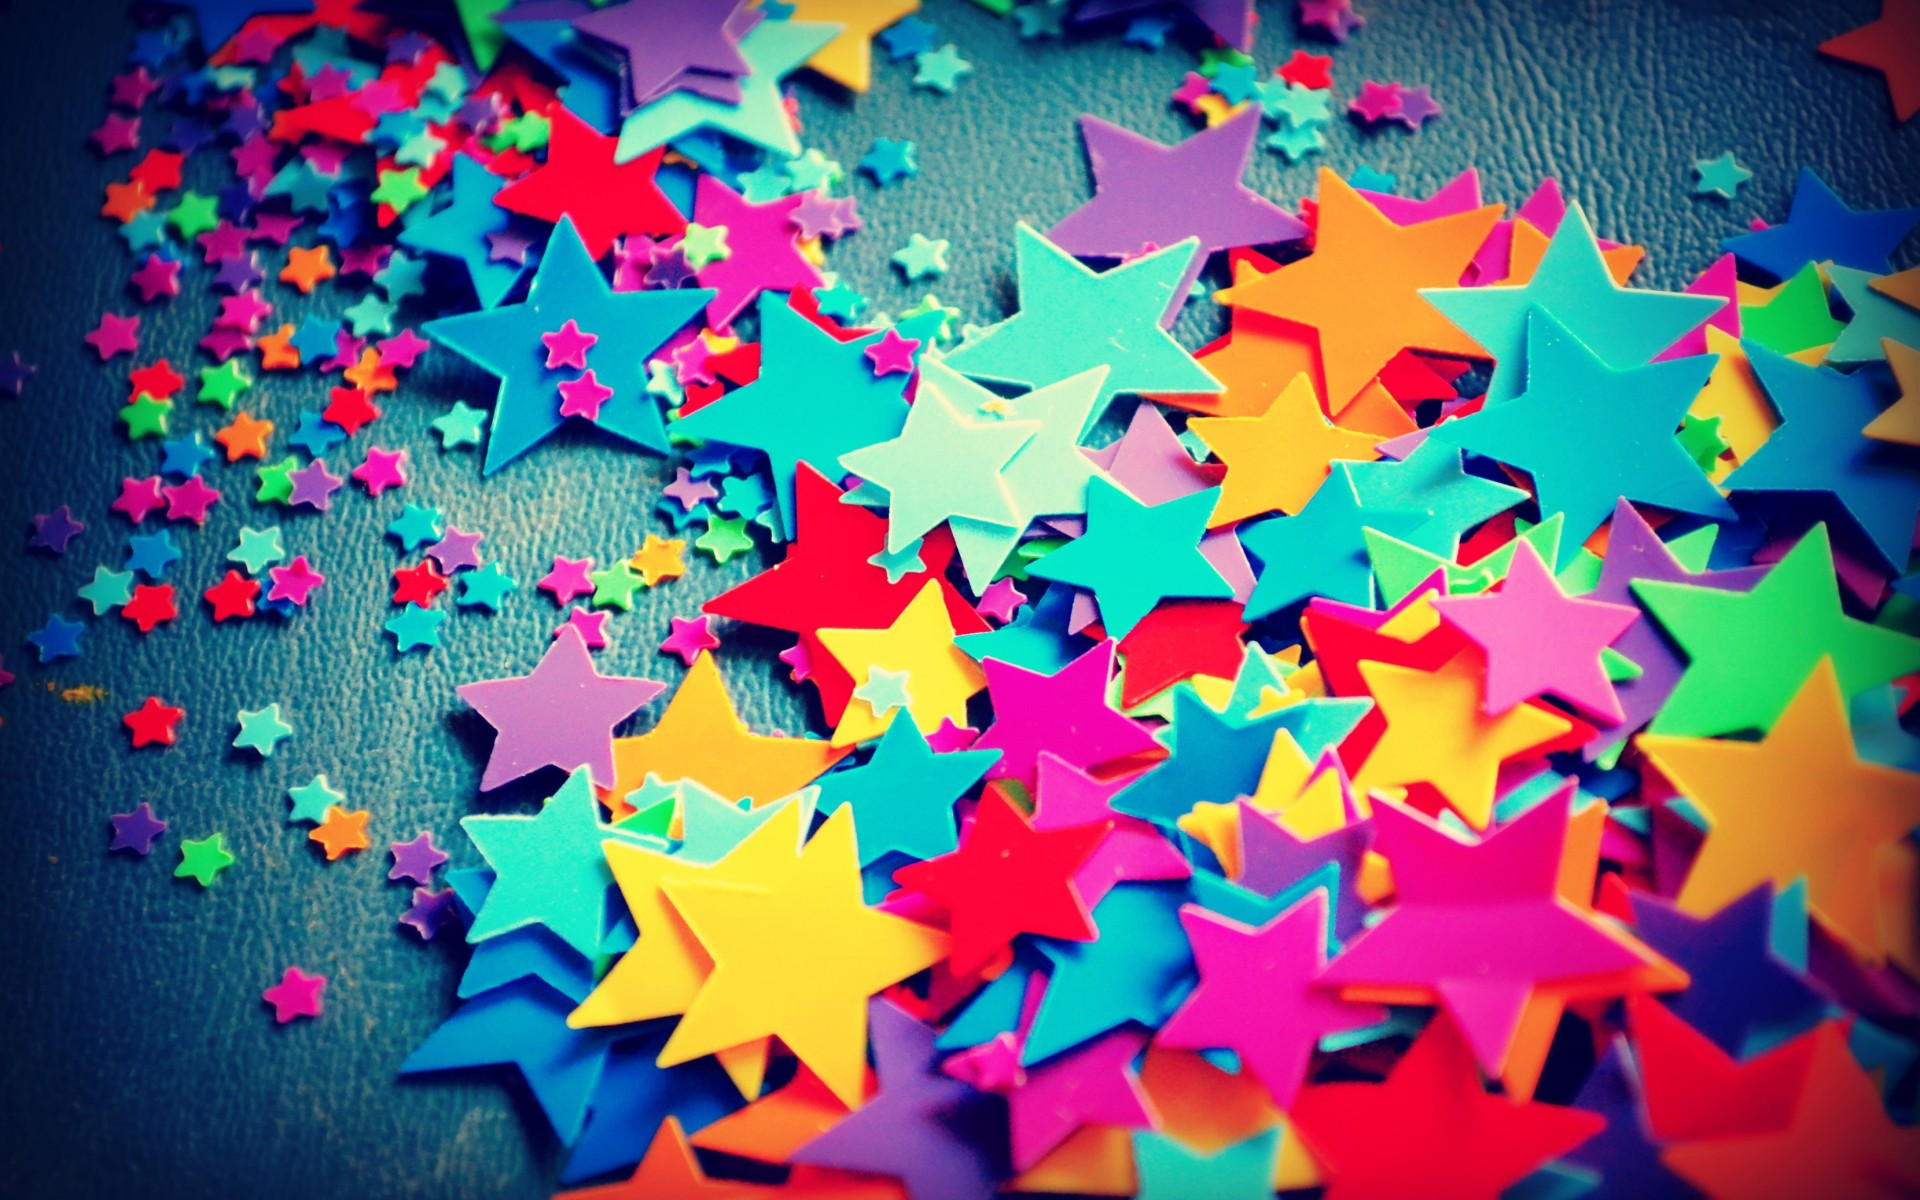 stars wallpapers backgrounds images - photo #34